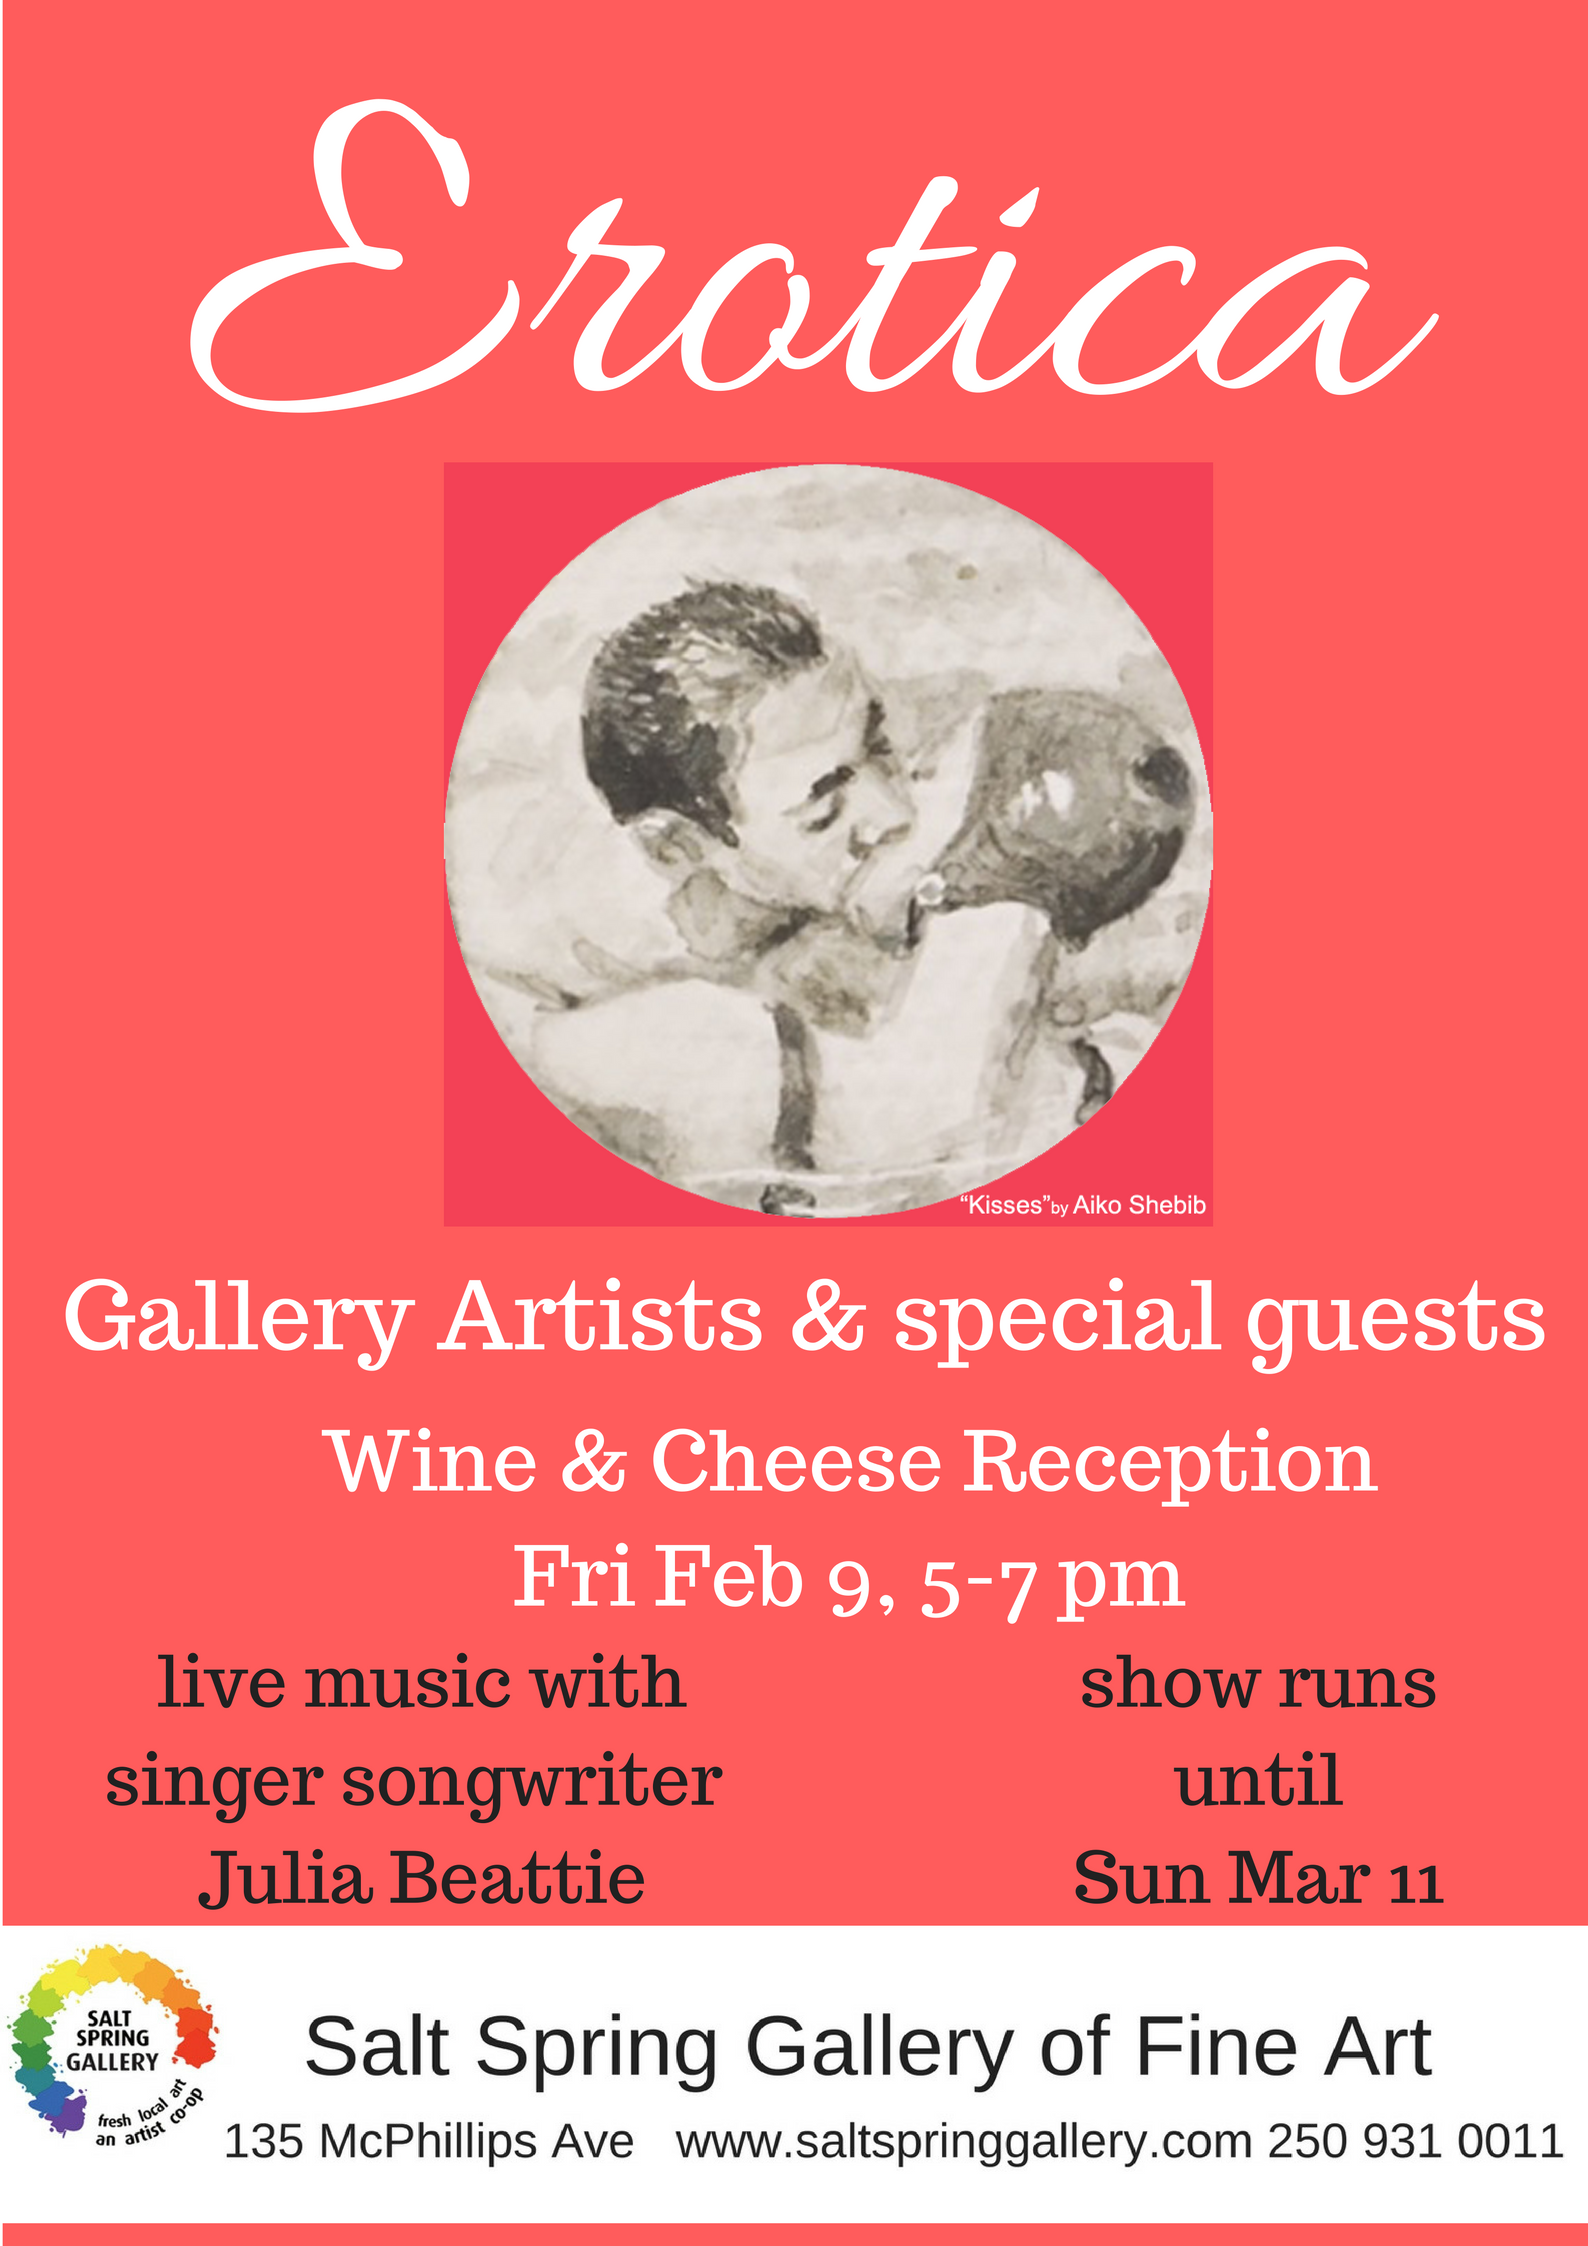 - Opening wine & cheese reception Fri Feb 9th, 5-7 pm.Live music with singer songwriter Julia Beattie.Show continues until Sun Mar 11th, 4pm.